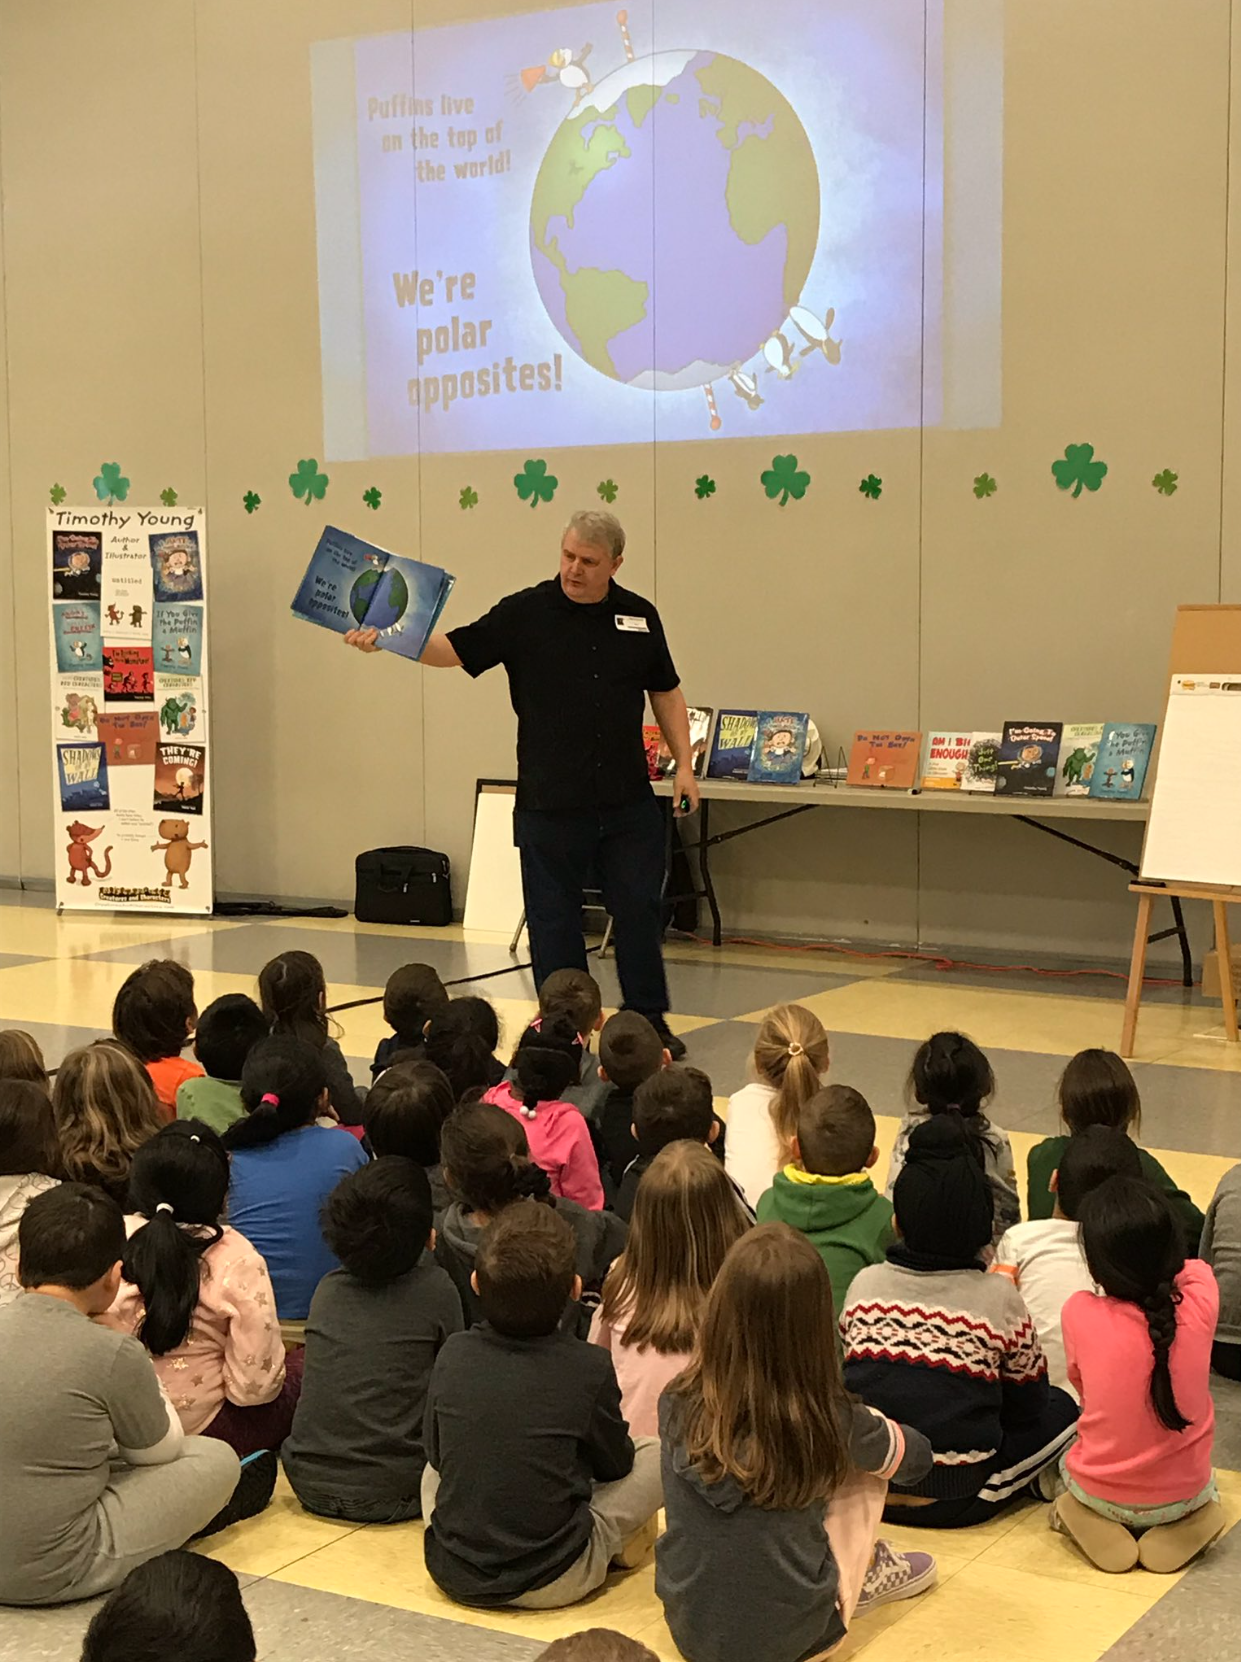 Author/illustrator Timothy Young reads his book The Angry Little Puffin at an author visit assembly.